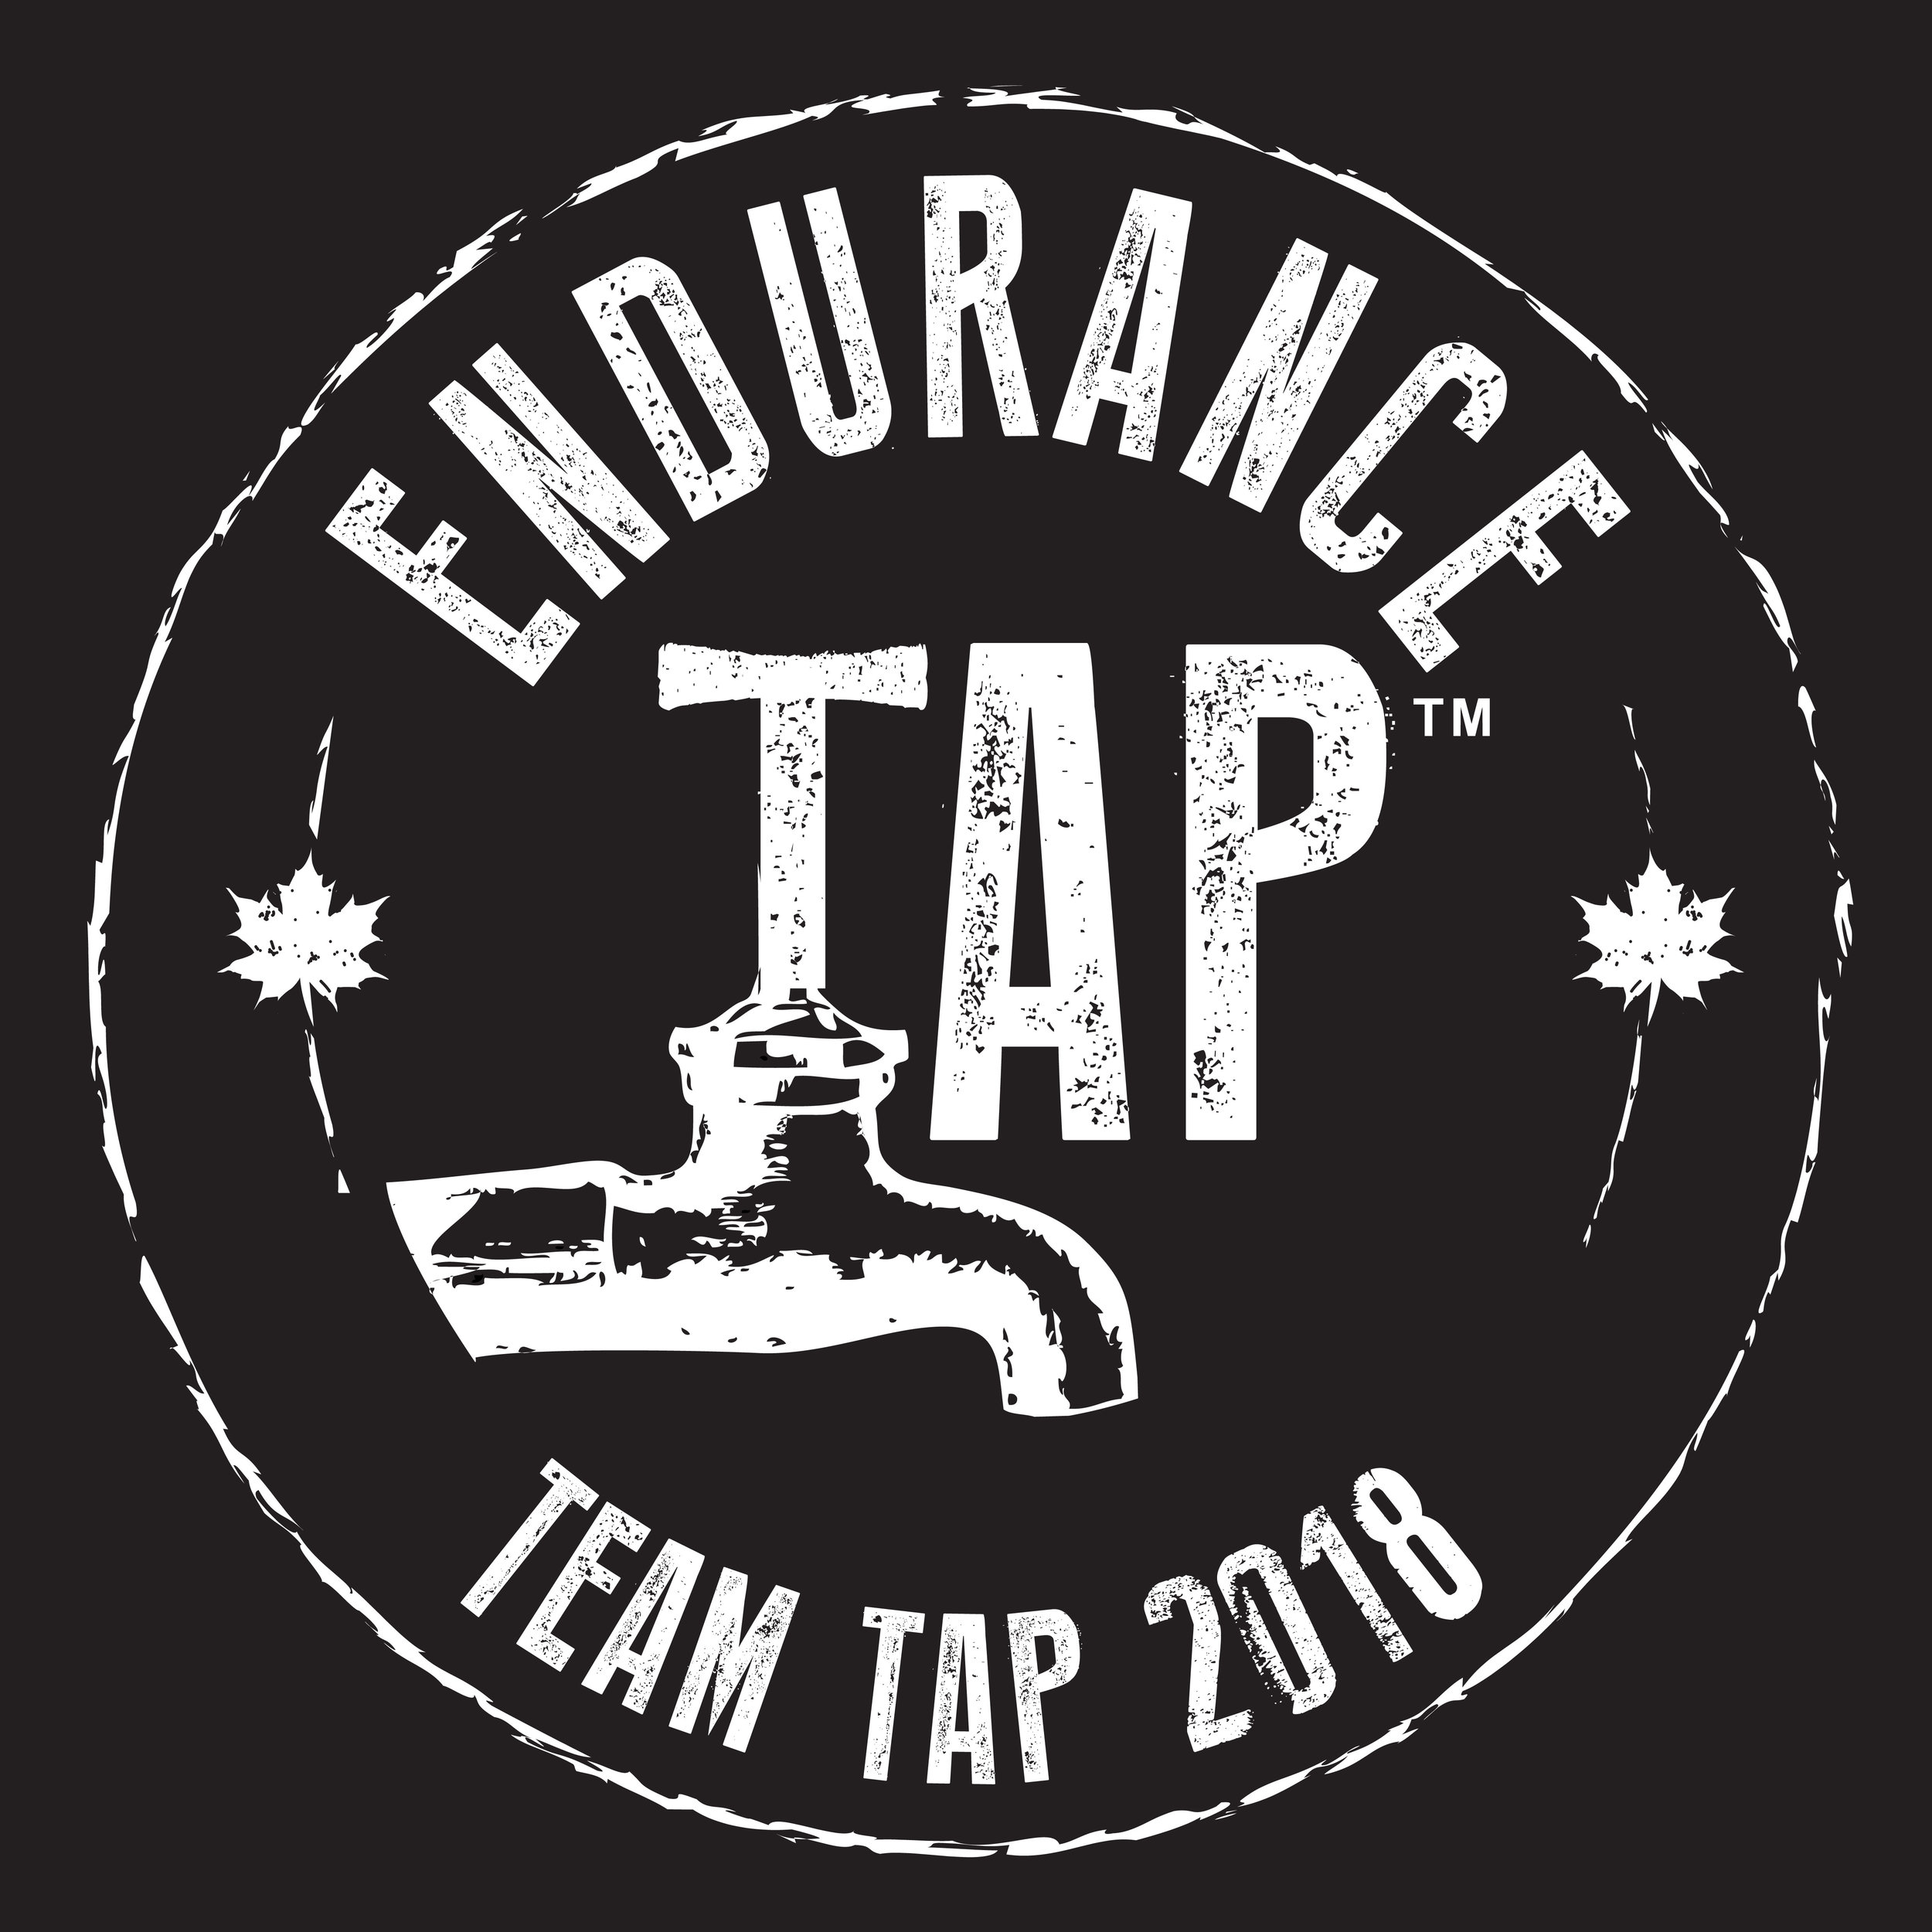 TEAM TAP 2018 BADGE (3) (1).jpg